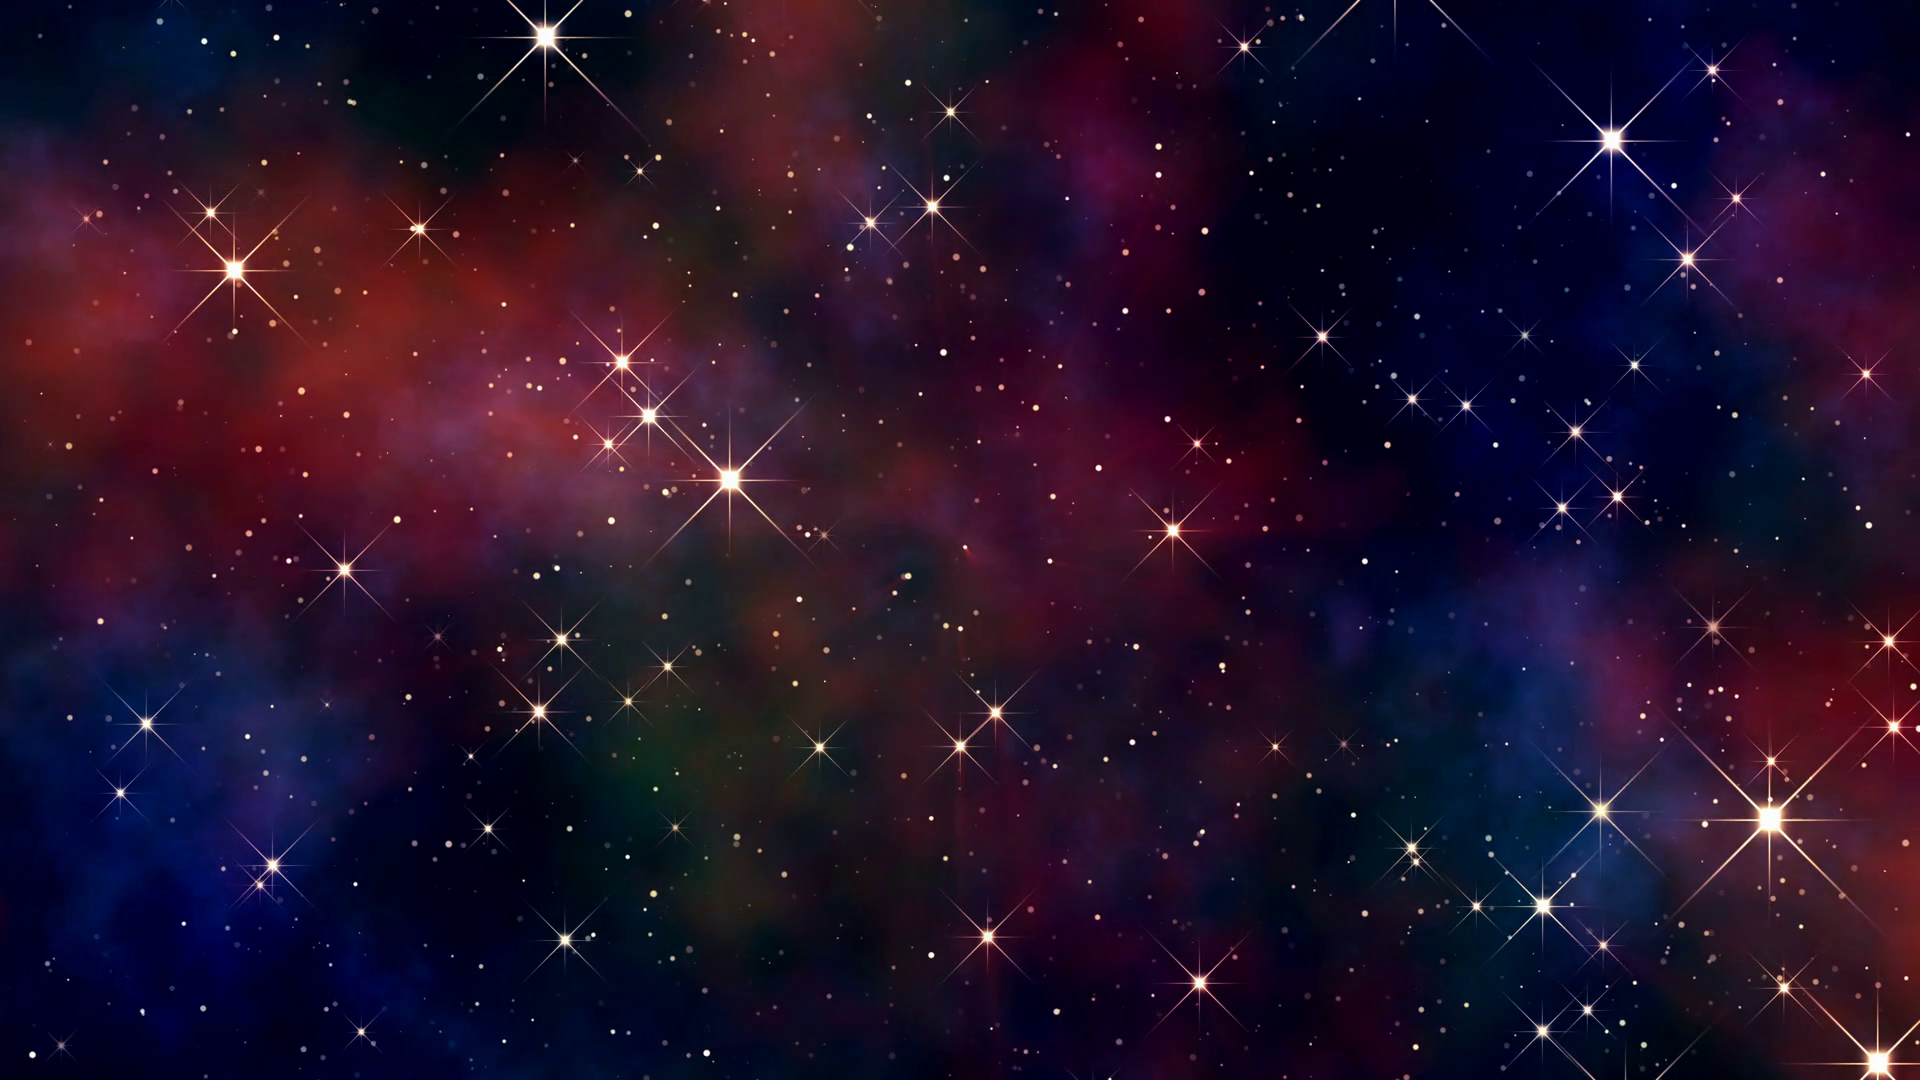 Galaxy Background Png.